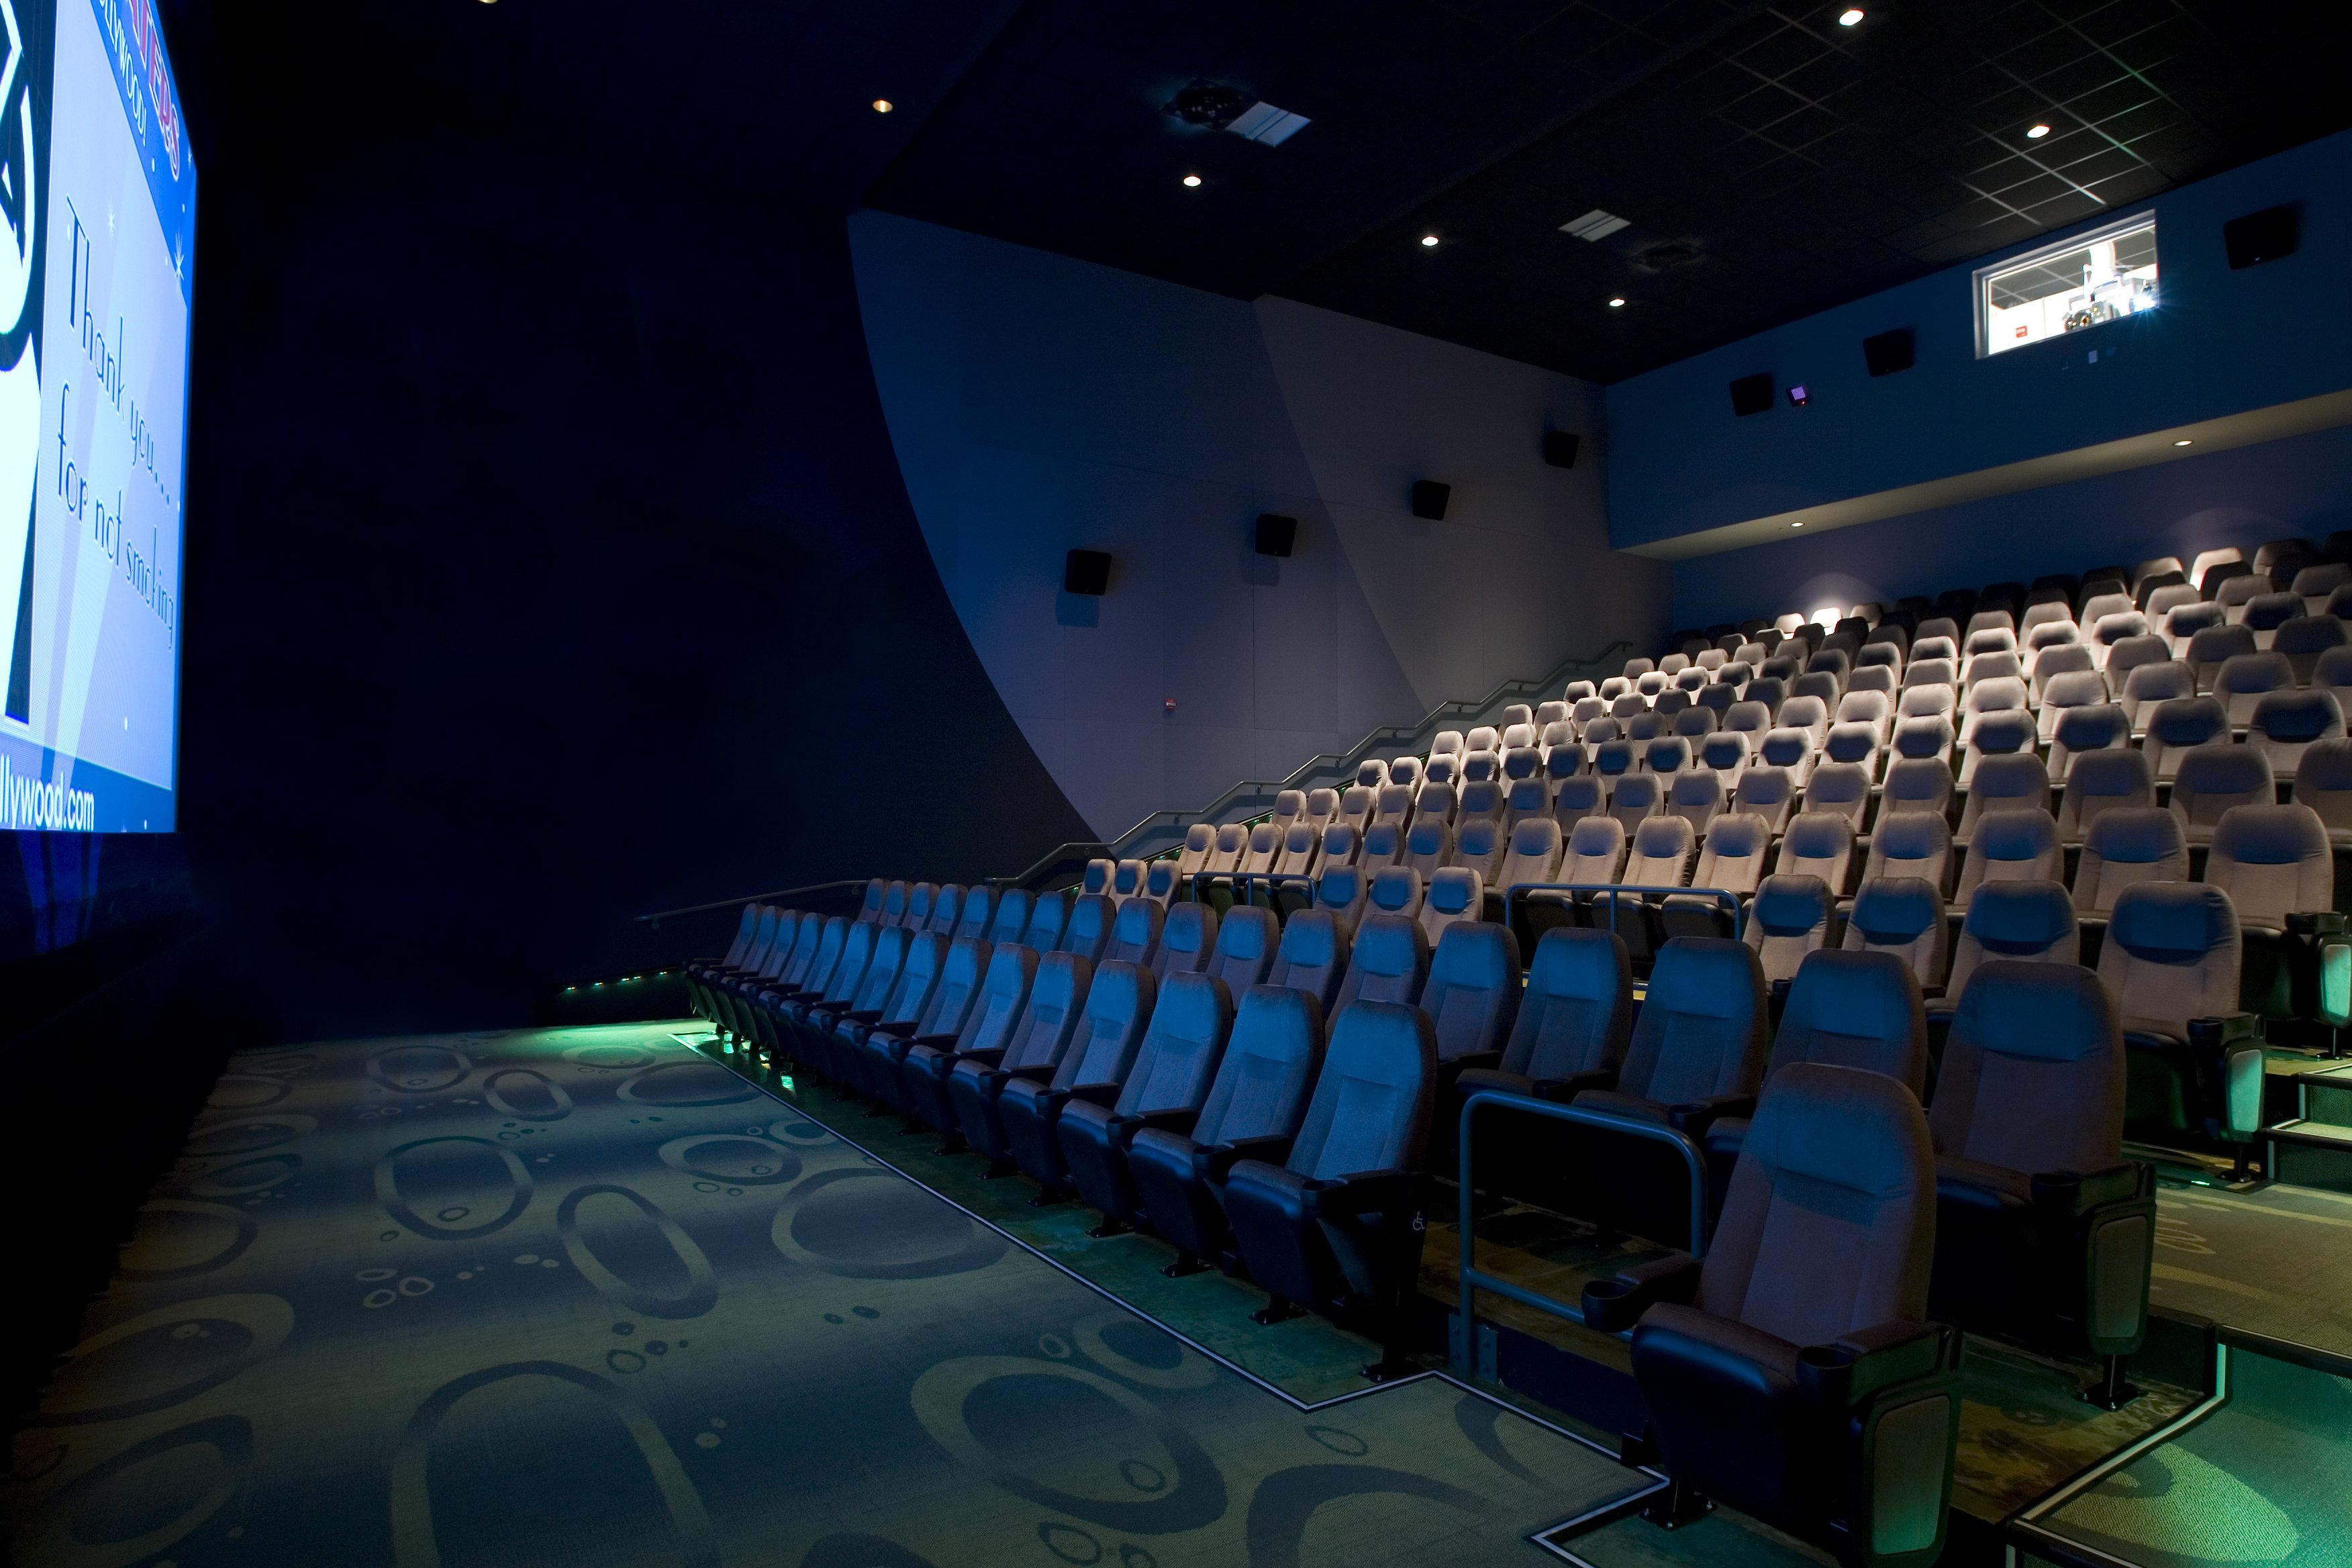 Camana Bay Cinema Cayman Islands